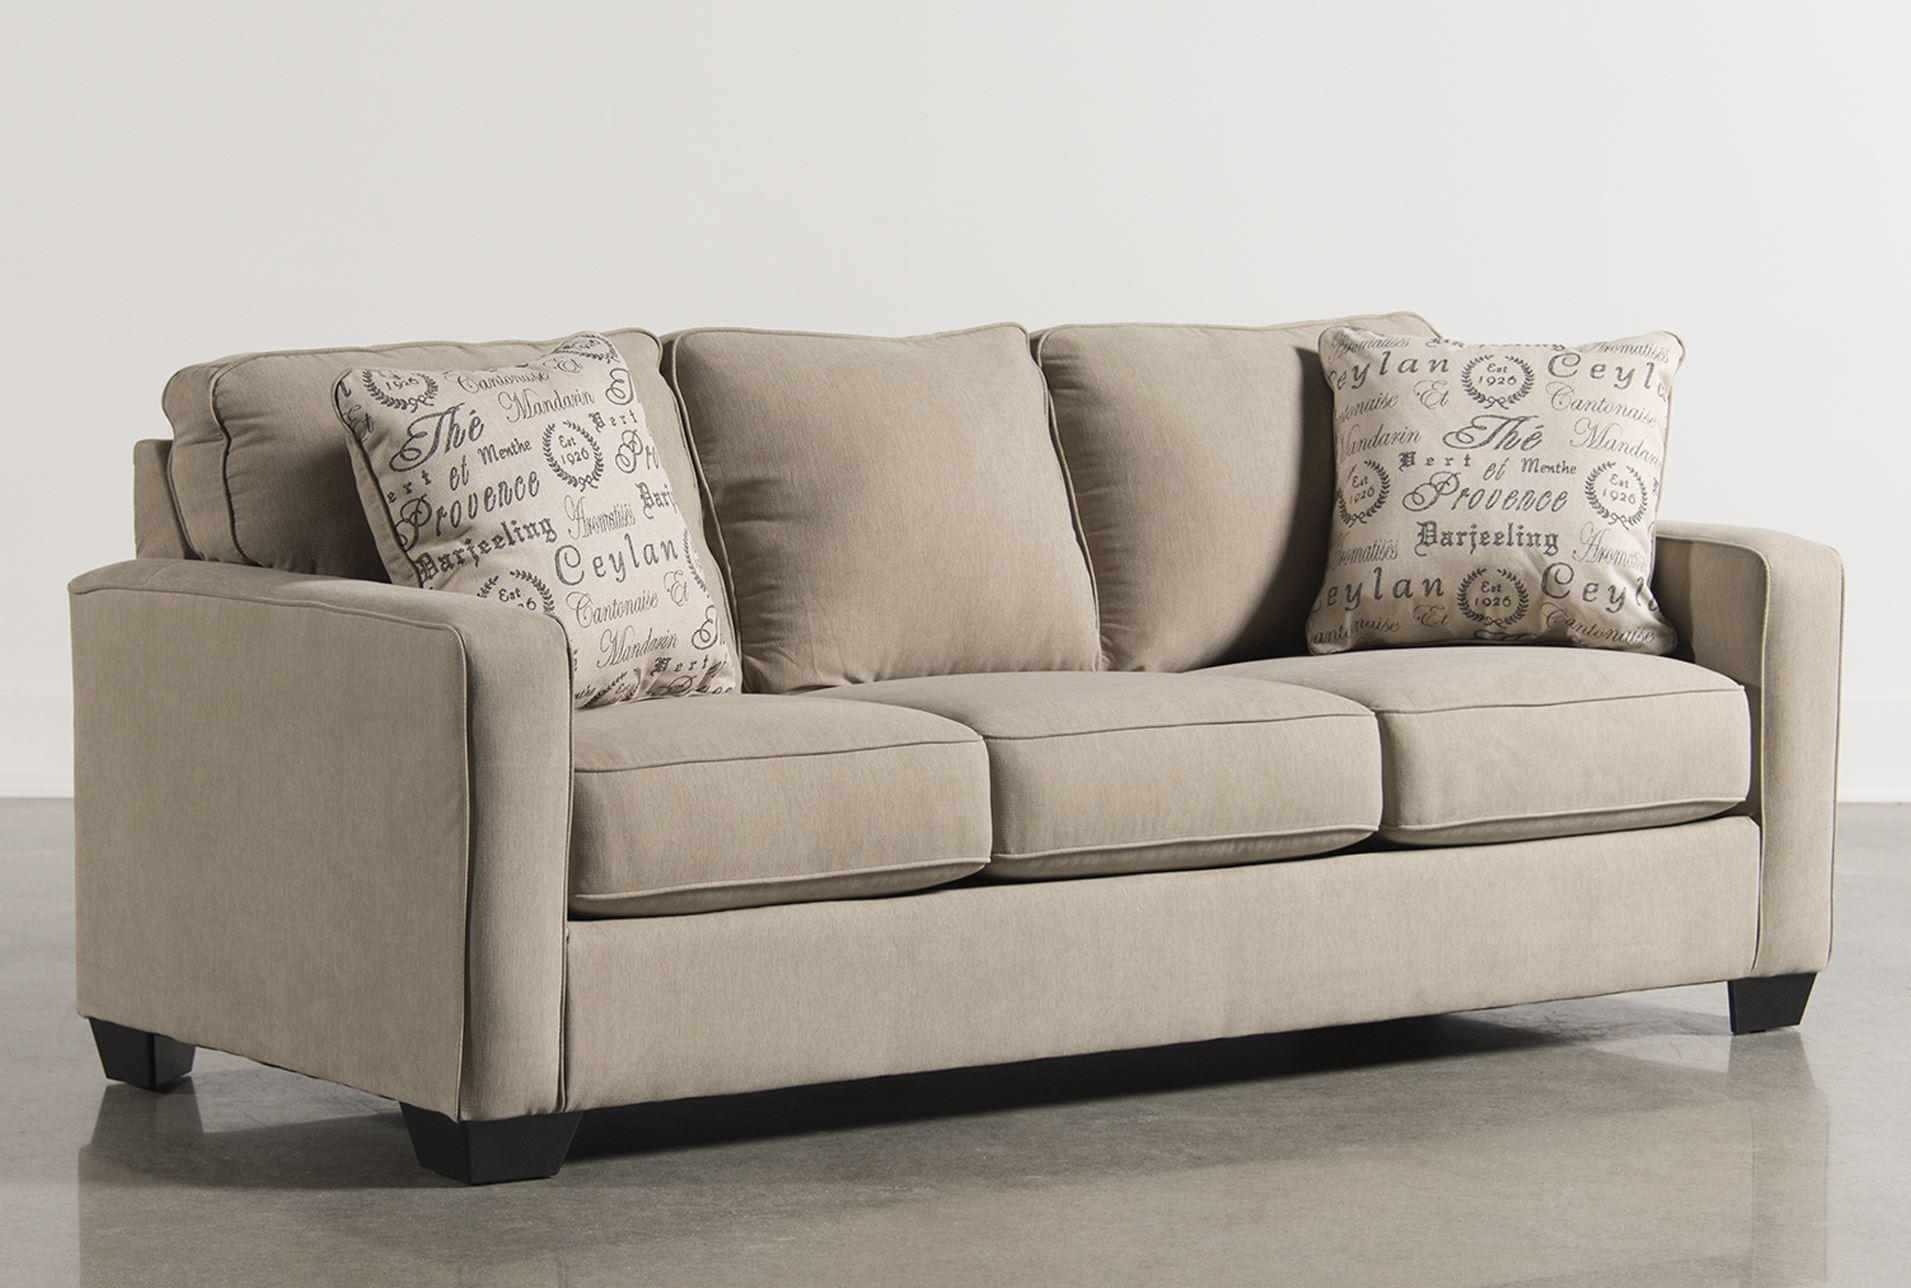 Alenya Quartz Queen Sofa Sleeper Free Delivery Marjen